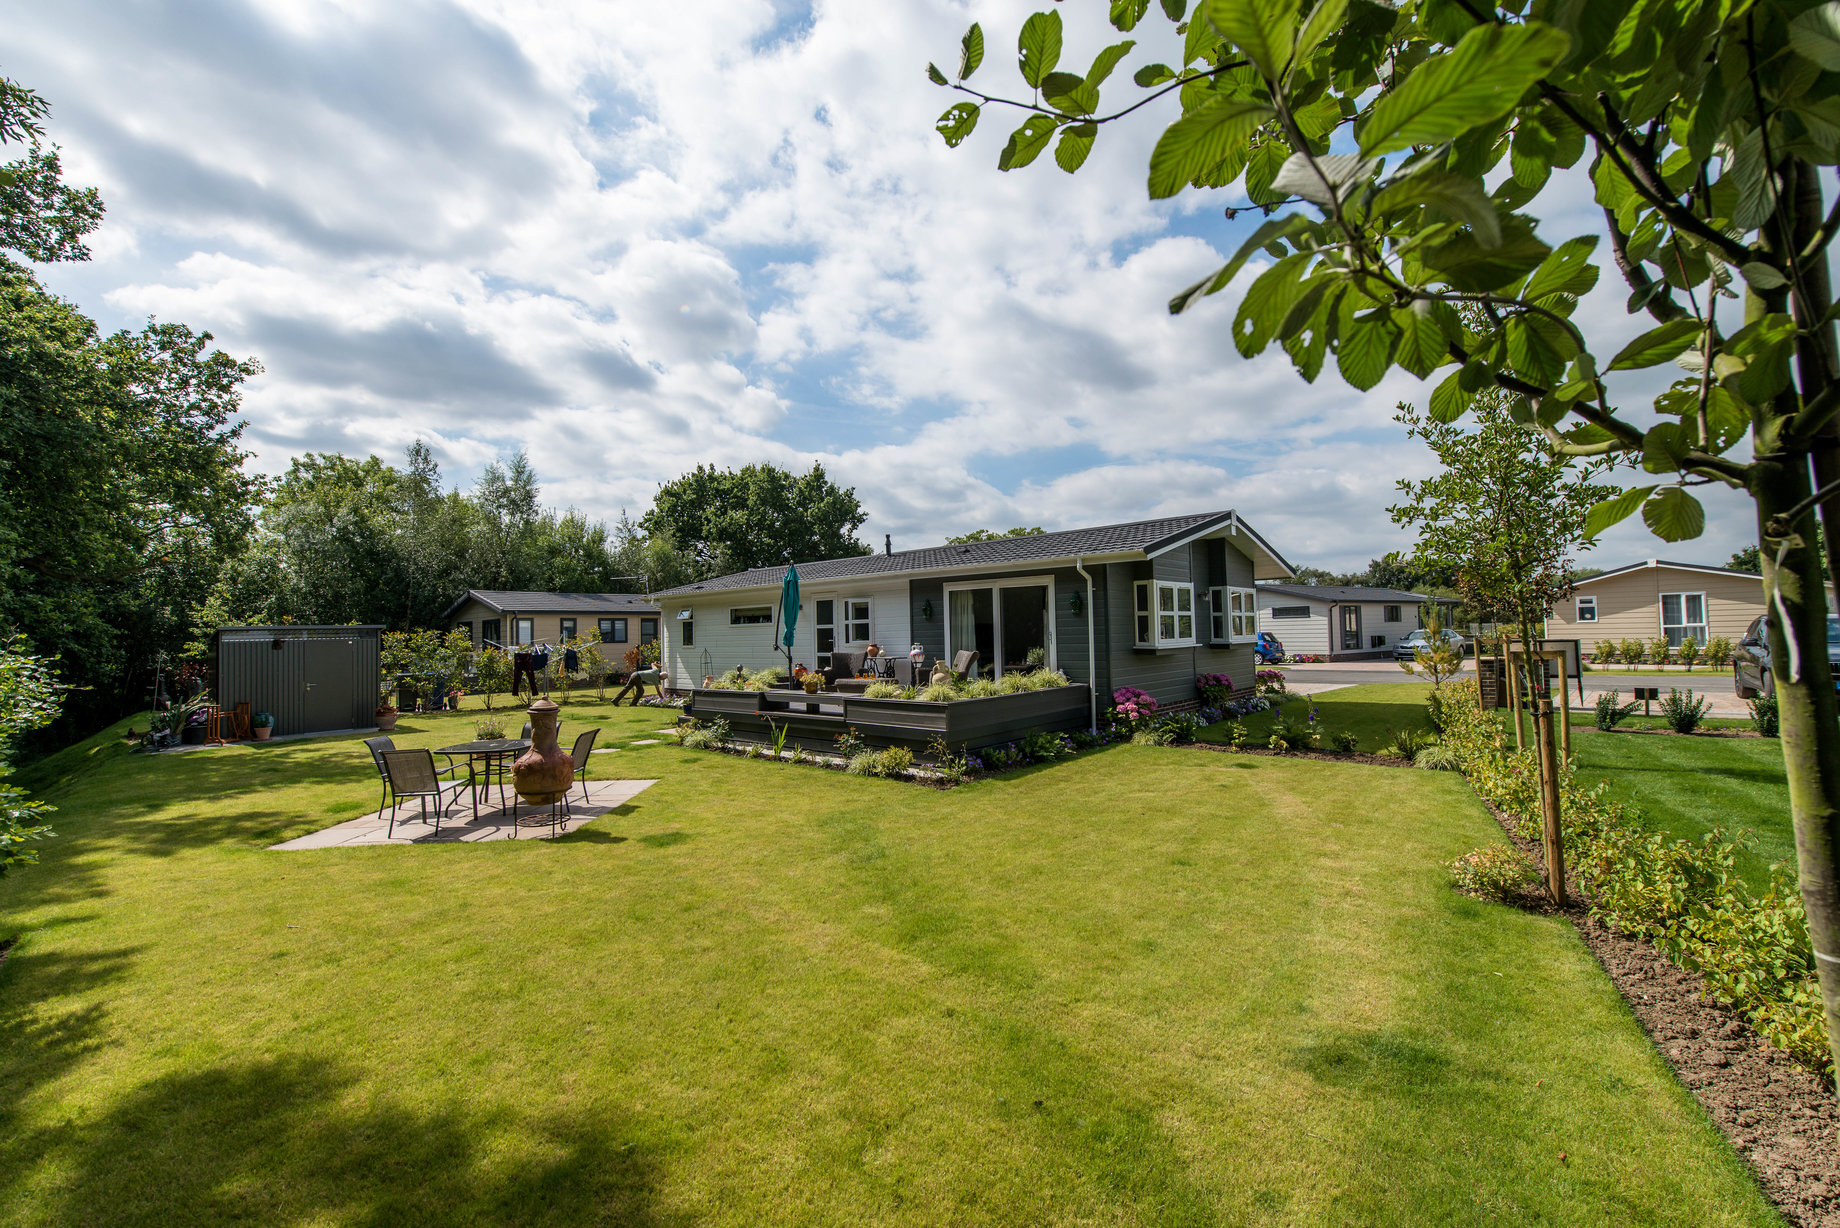 The Best Park Homes in Cheshire and Why